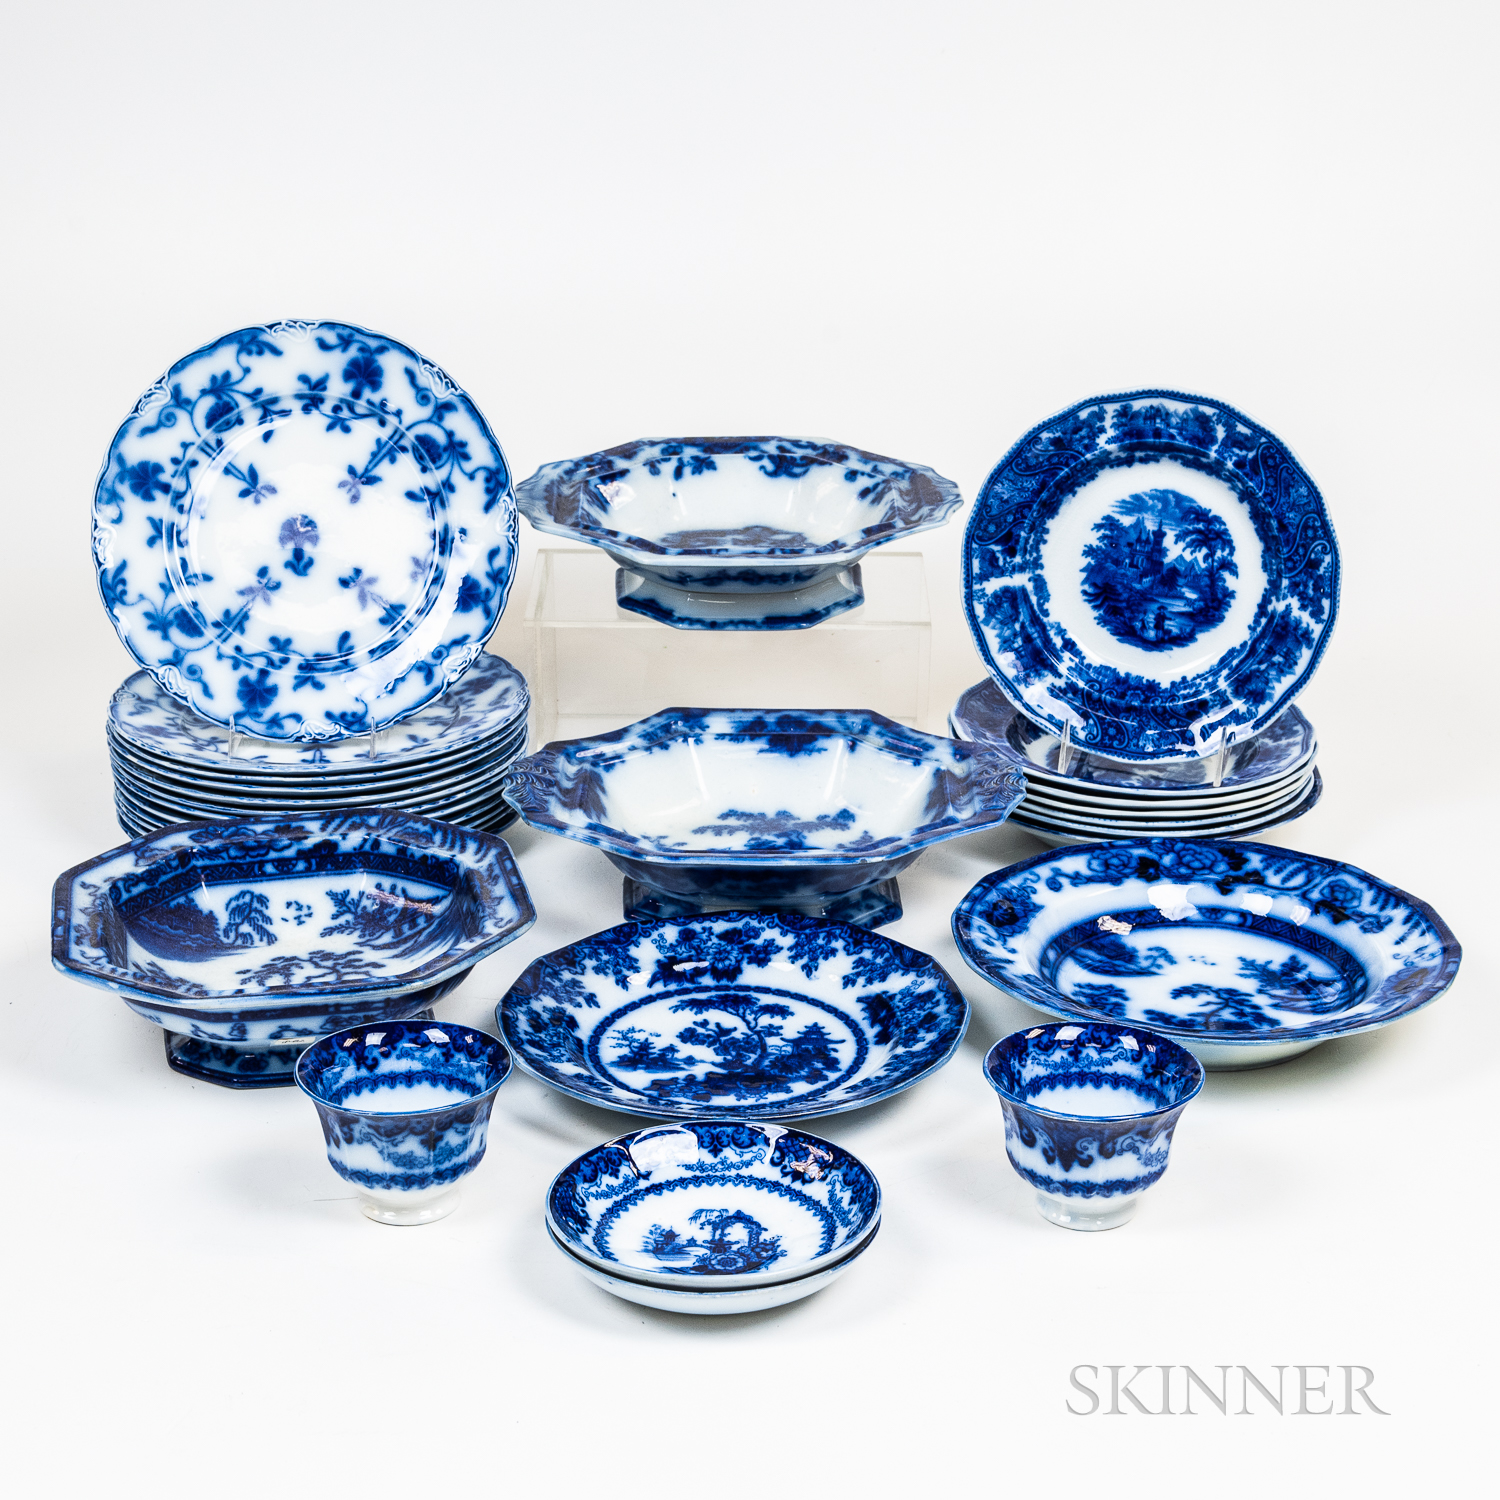 Group of Flow Blue China Tableware